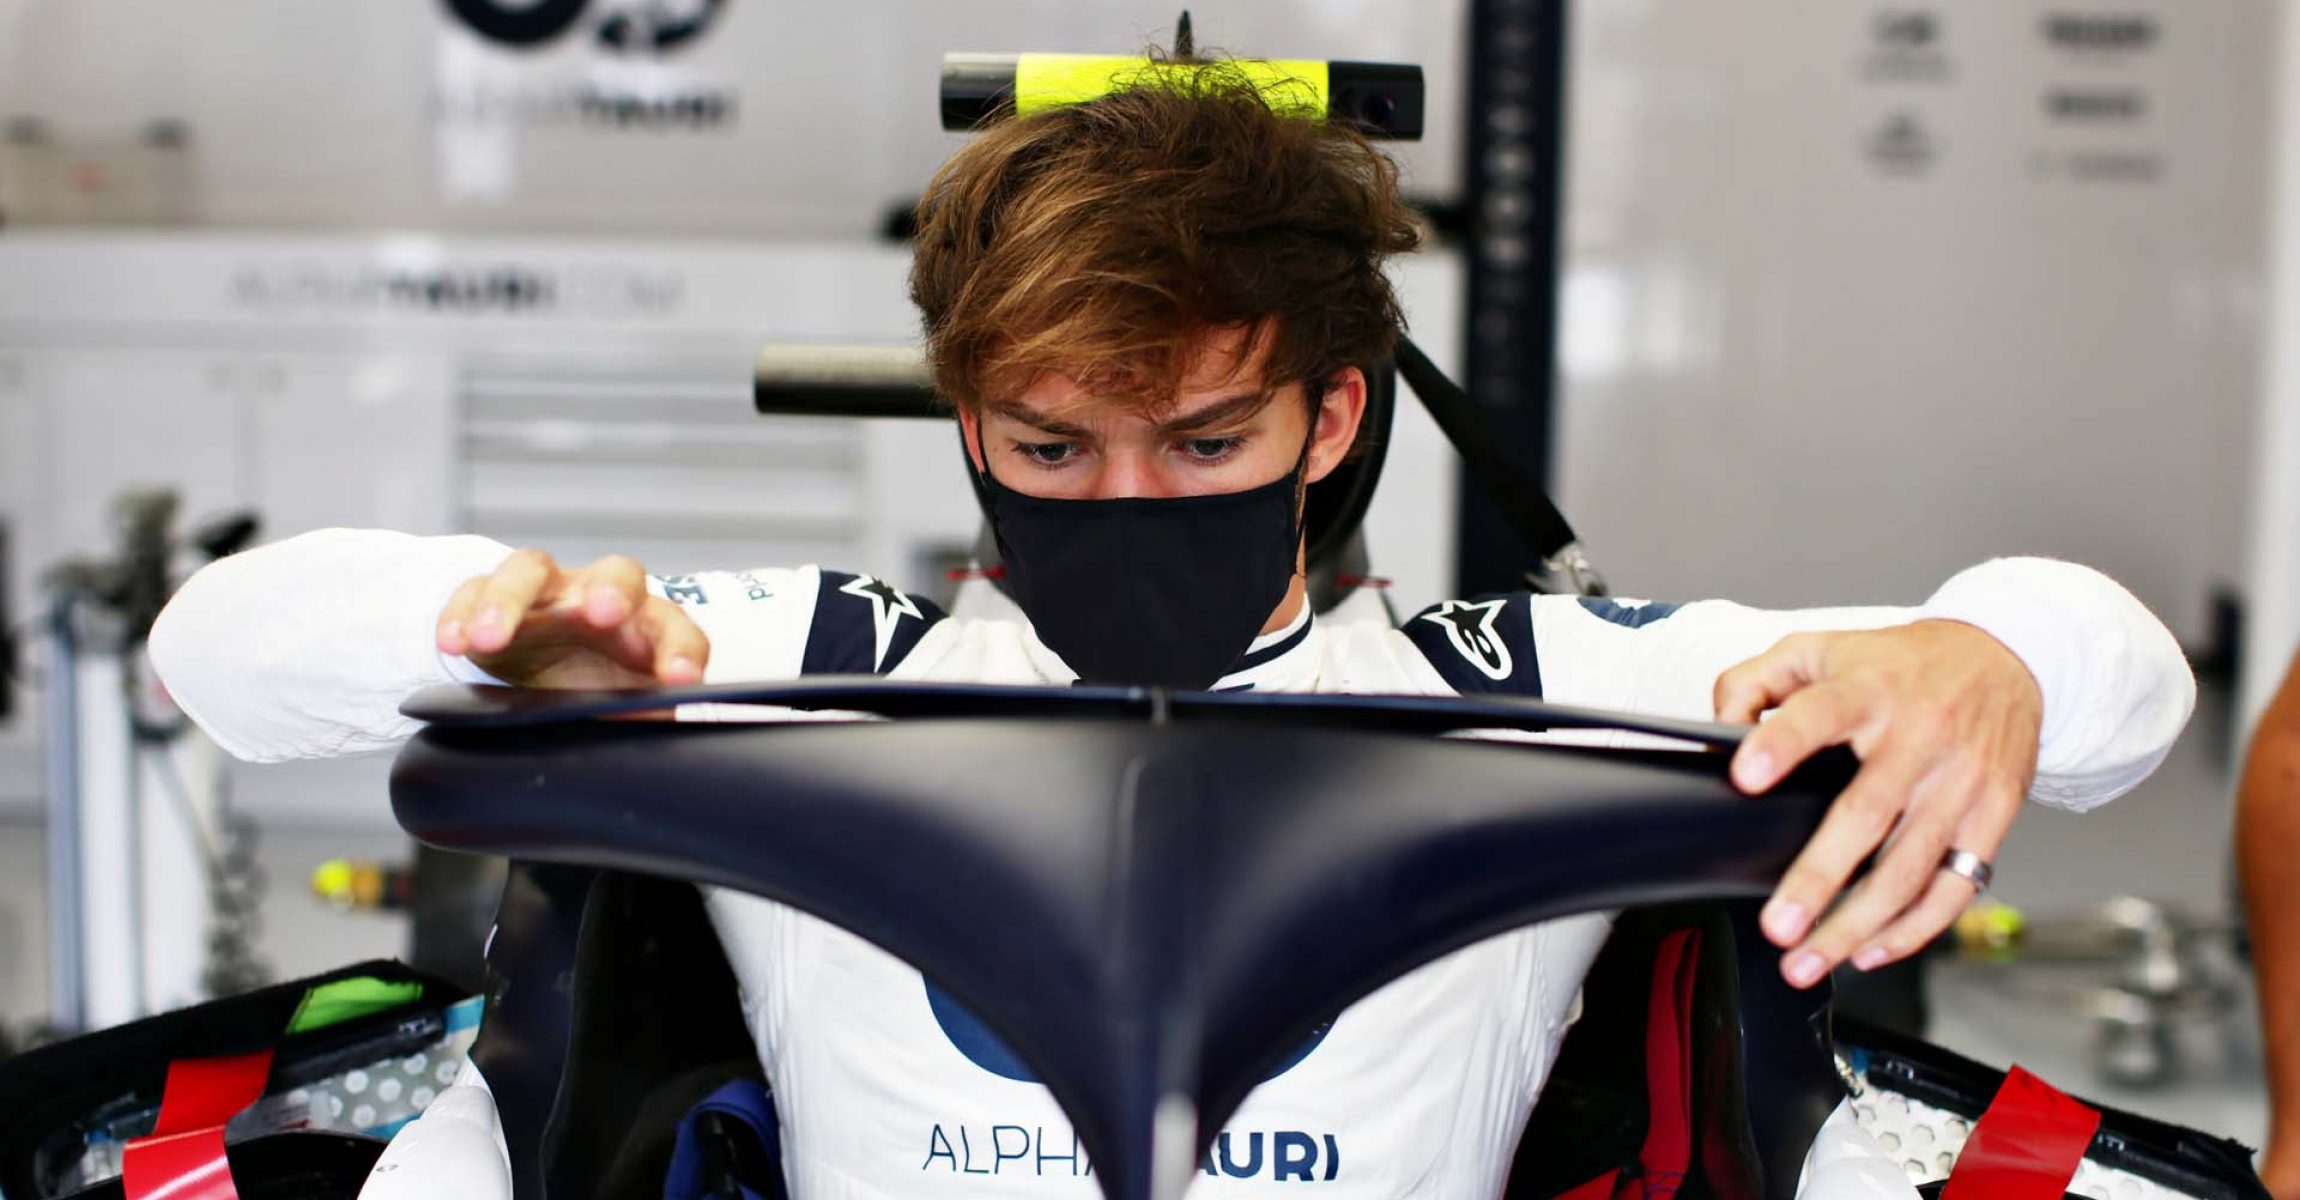 BUDAPEST, HUNGARY - JULY 16: Pierre Gasly of France and Scuderia AlphaTauri climbs into his car in the garage during previews for the F1 Grand Prix of Hungary at Hungaroring on July 16, 2020 in Budapest, Hungary. (Photo by Peter Fox/Getty Images) // Getty Images / Red Bull Content Pool  // AP-24N71FBPW1W11 // Usage for editorial use only //